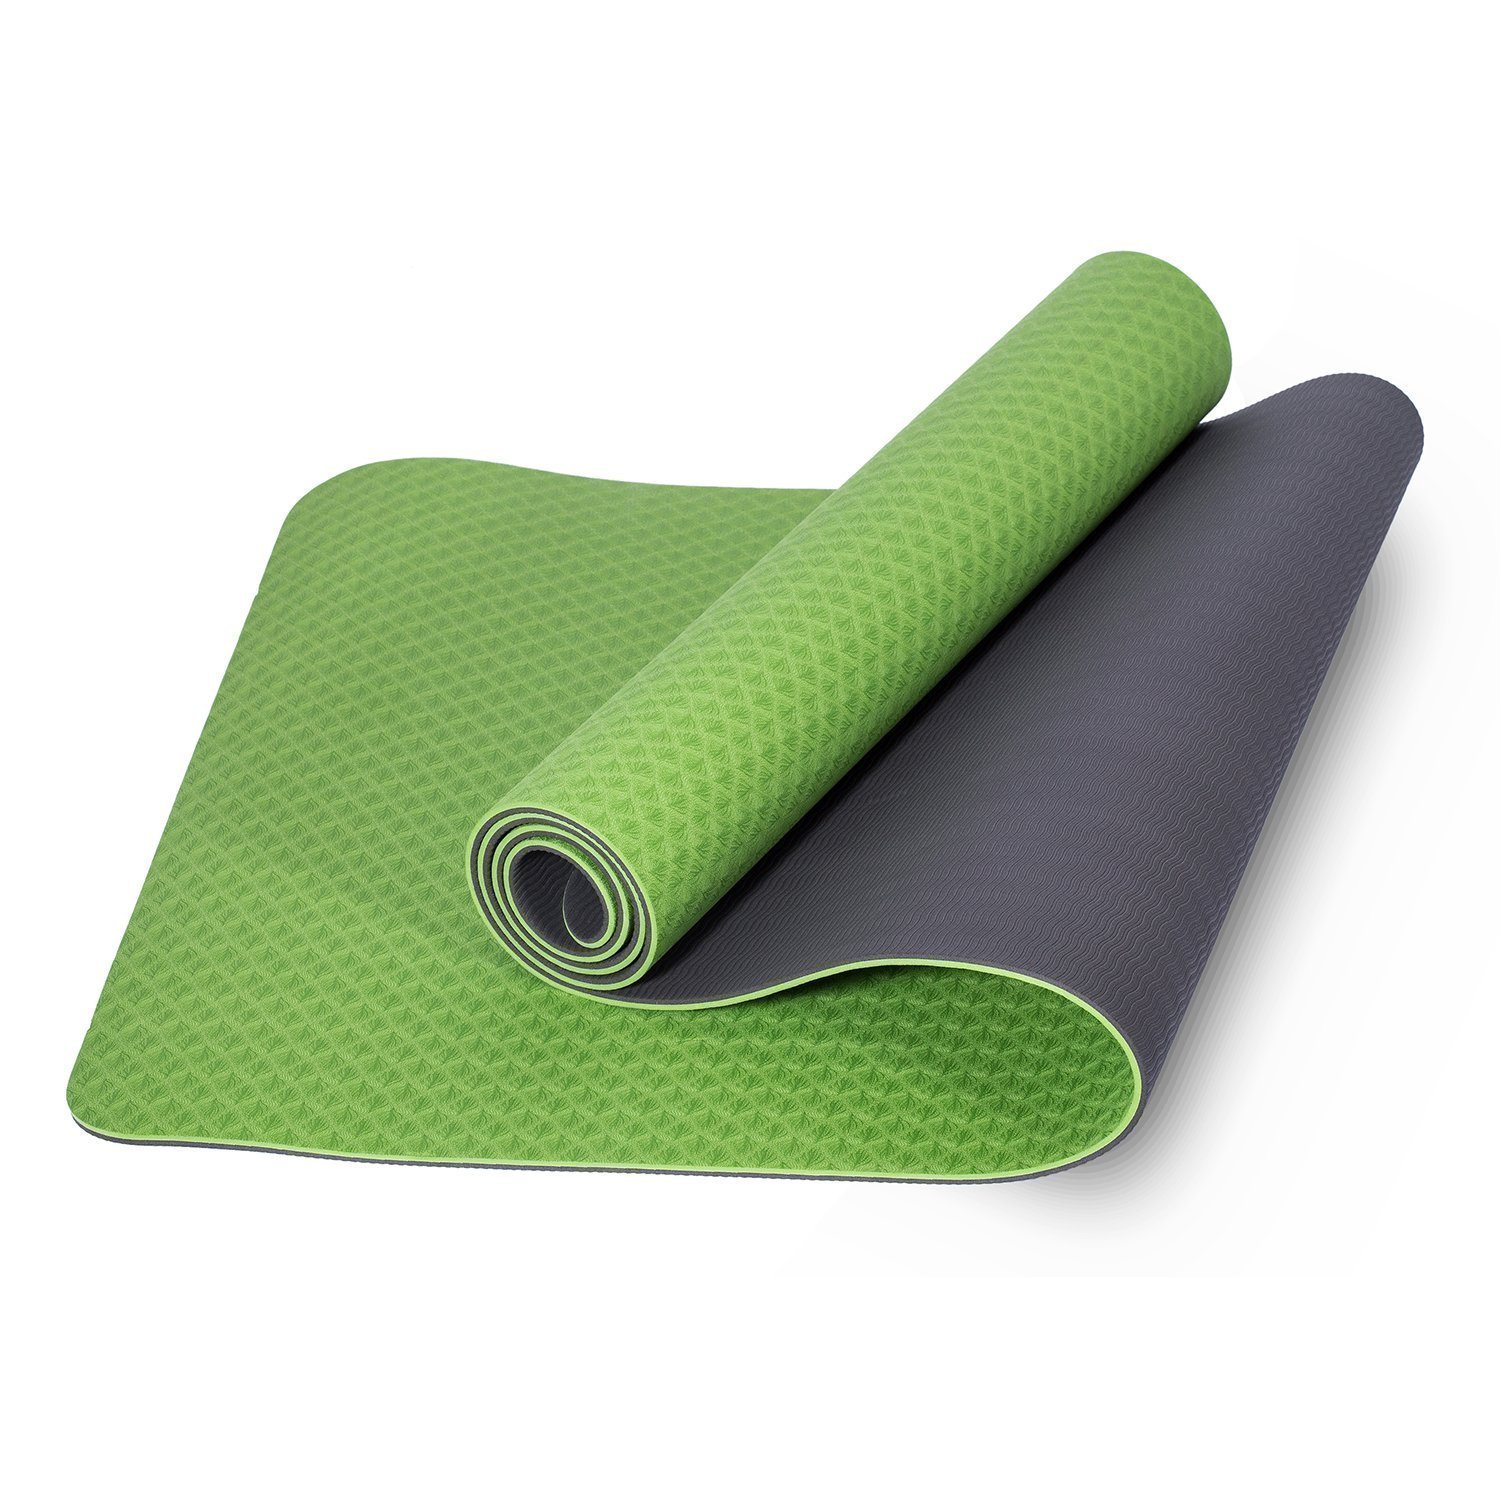 Large 3mm Thick Yoga Mat Pilate Exercise Non Slip Gym Fitness with Carry Strap 8 Sporting Goods